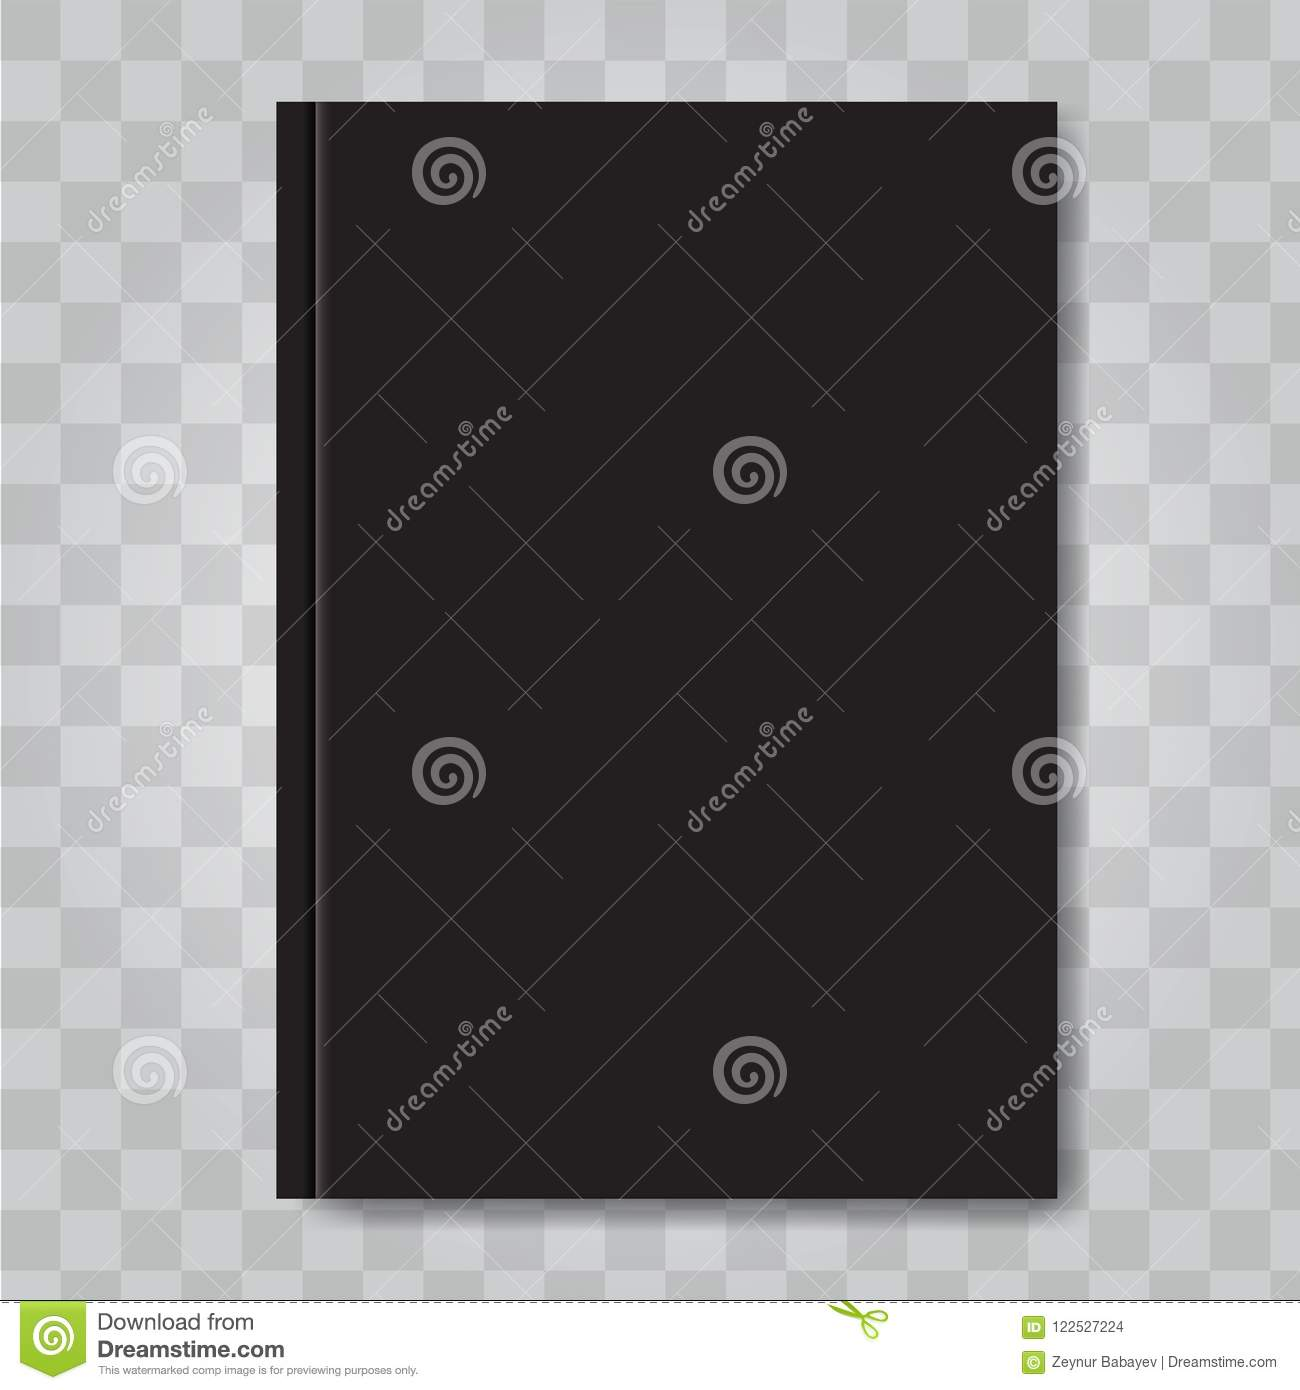 Illustrated Book Cover Vector ~ Vector book cover mock up dark black color ready template blank